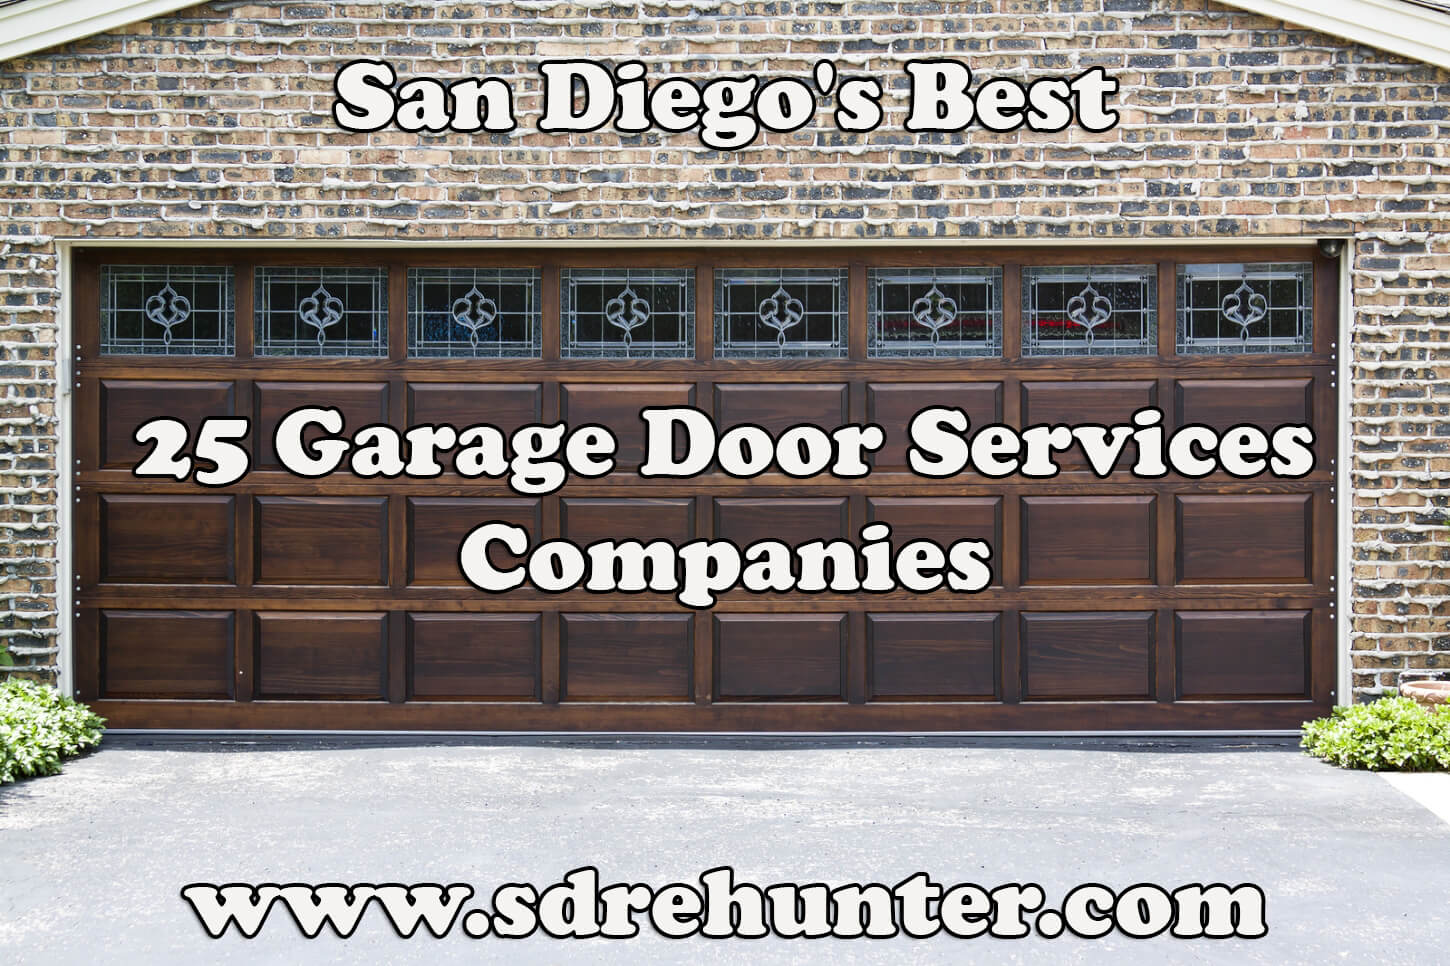 & San Diegou0027s Best 25 Garage Door Services Companies in 2018